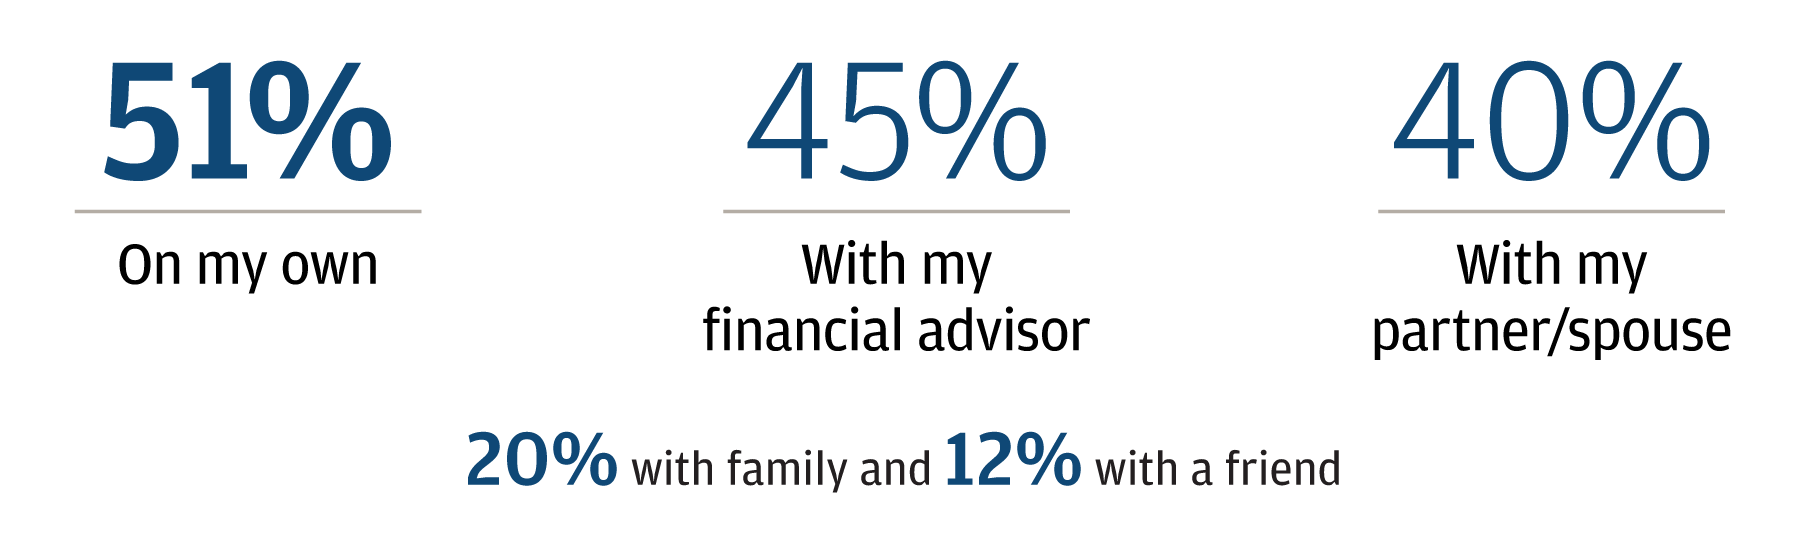 Split decisions: While many consult an advisor or a partner, more than half of our respondents said they make money decisions on their own.